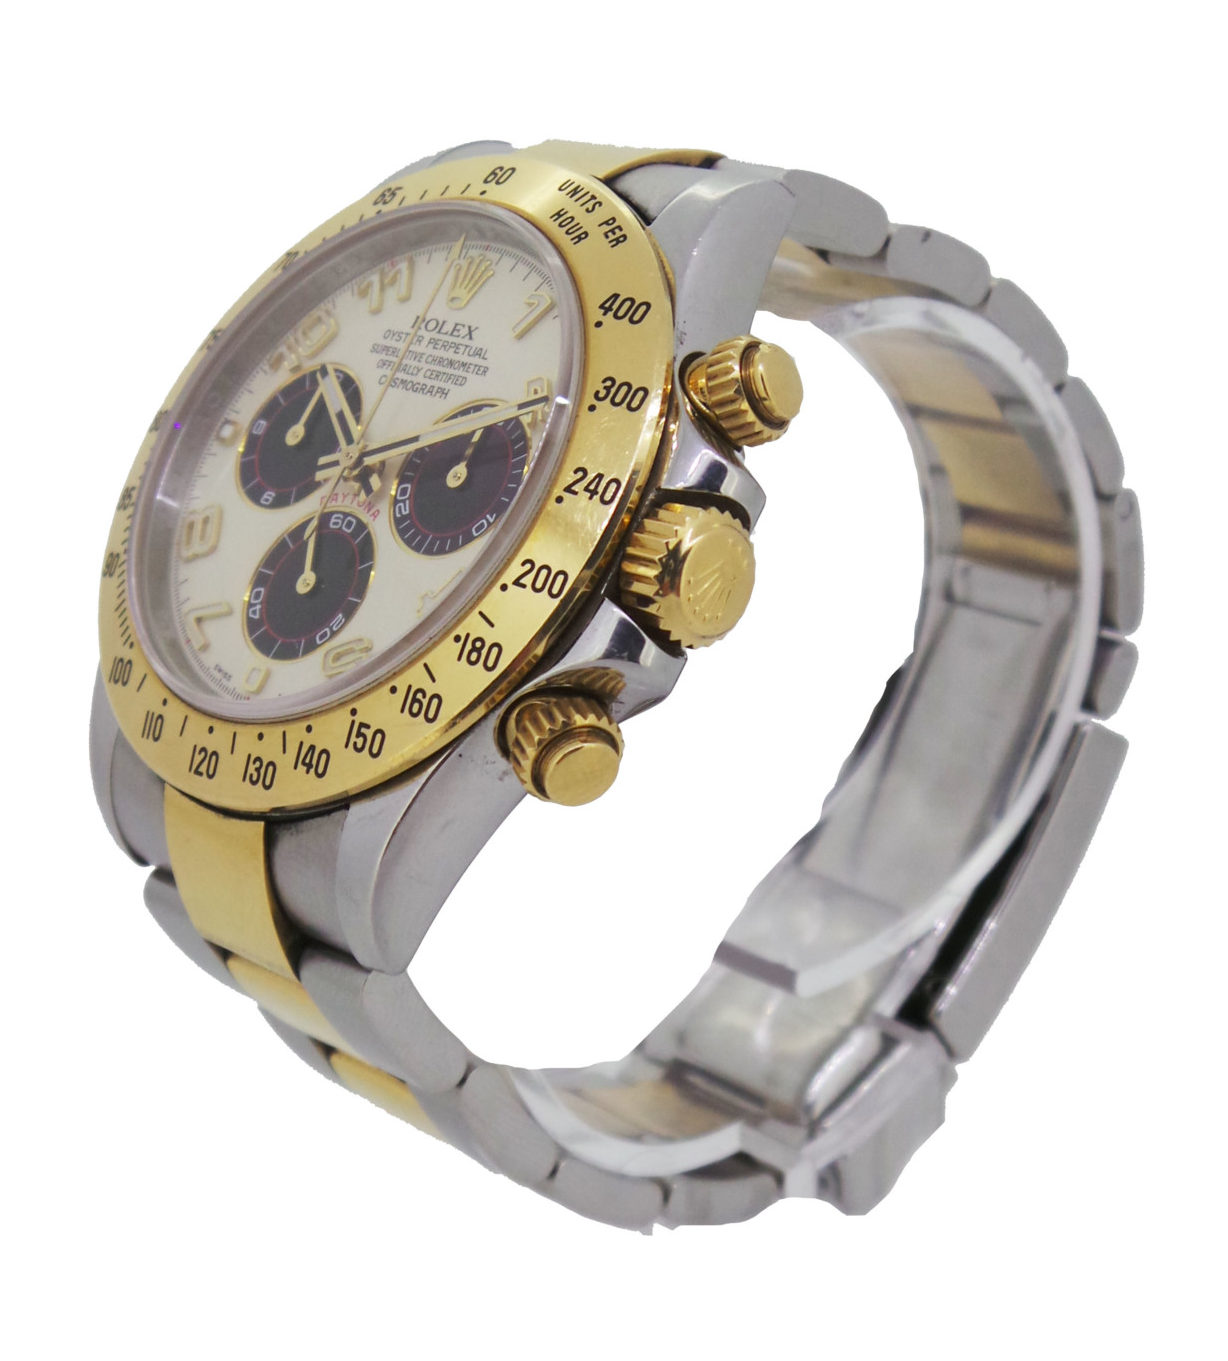 Rolex Model: Daytona Cosmograph Model number: 116523 Movement Type: Automatic Bracelet: Bi-Colour Case: Steel With Gold Bezel Dial: Cream With Black Sub Dials Bezel Size: 40mm Box: No Papers:No Estimated NRP: £11,500.00.